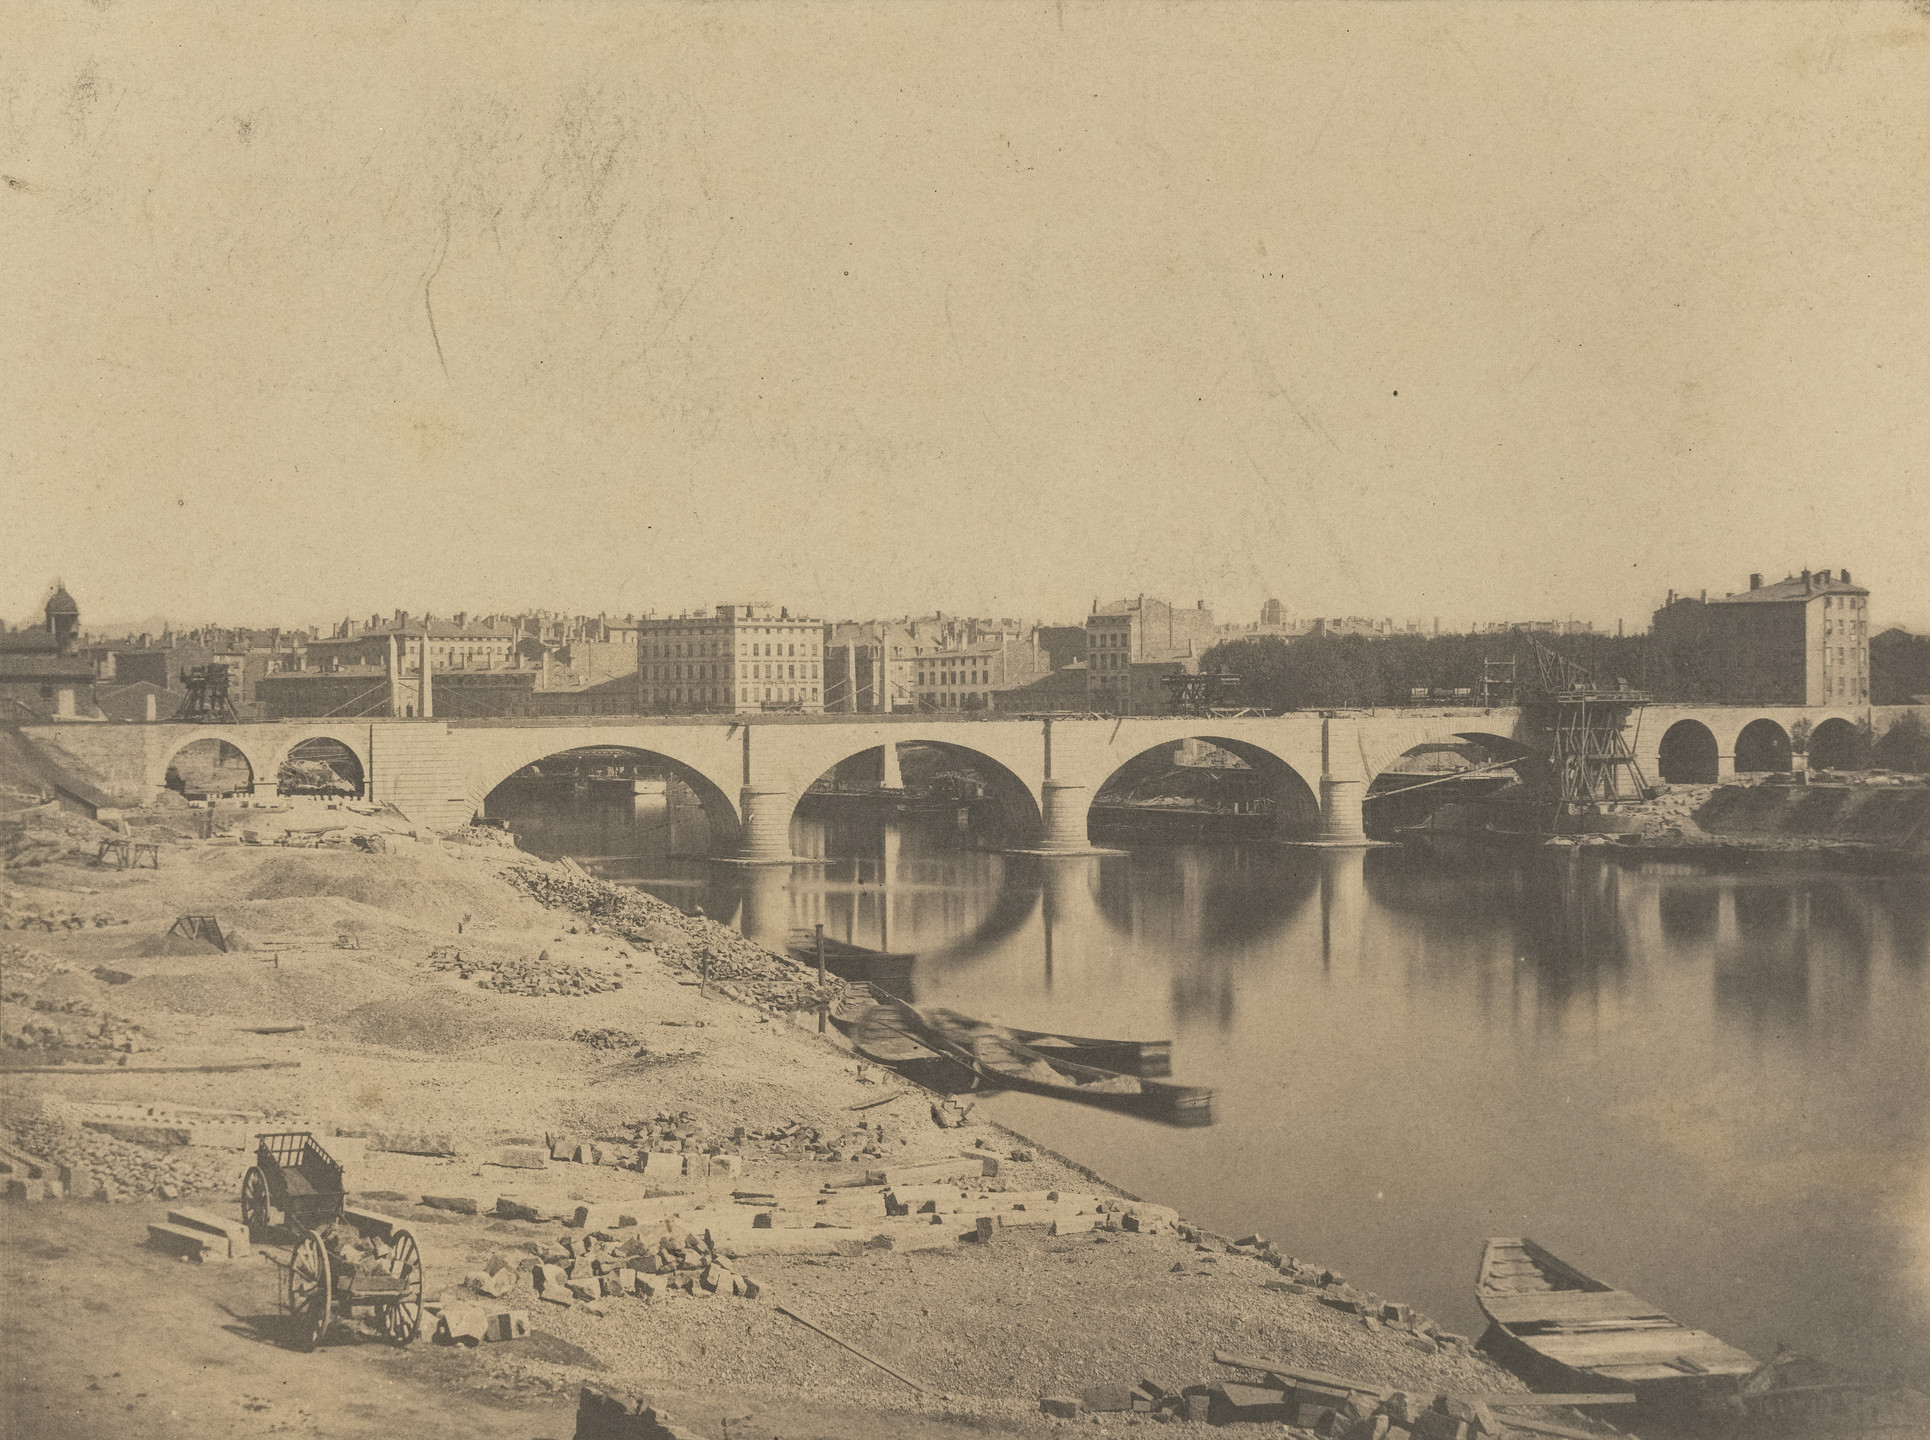 Camille Bernabé. Viaduct on the Saône. October 5, 1854